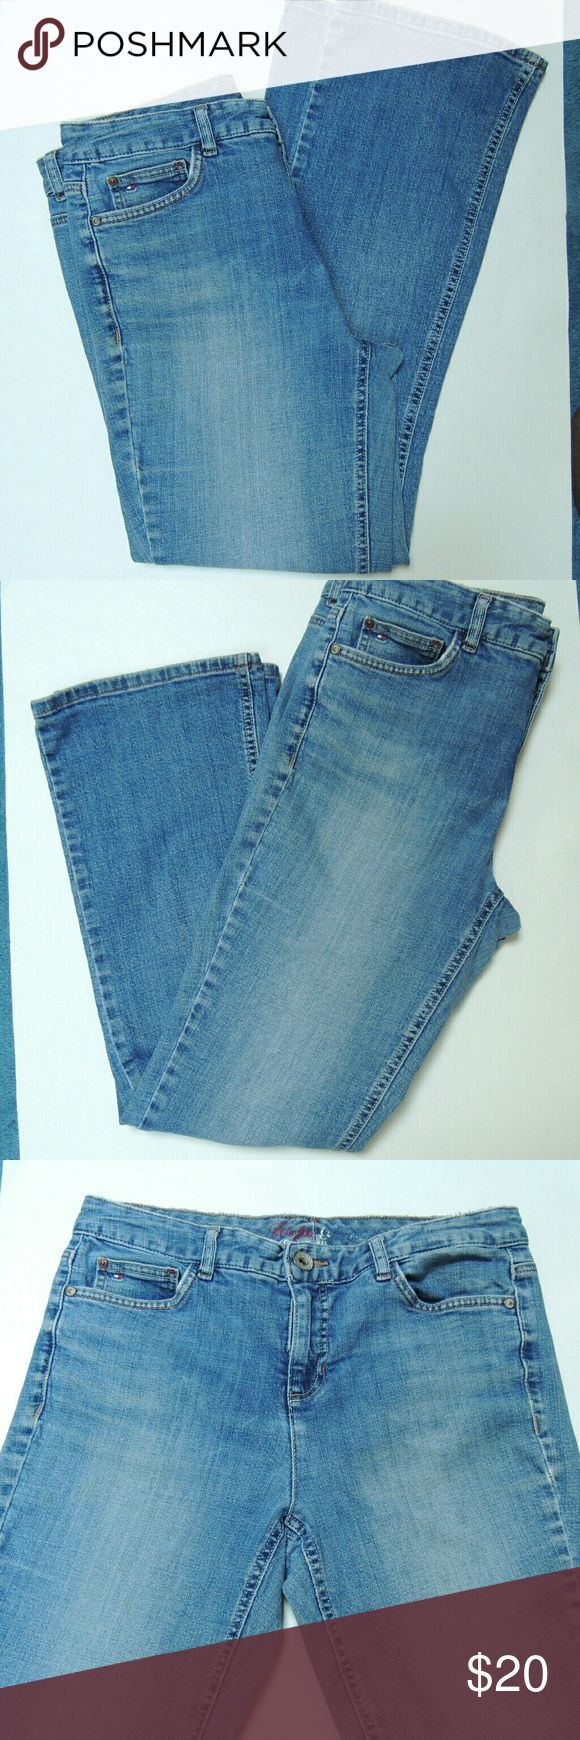 1 day sale.  Tommy Hilfiger hope bootcut jeans Boot cut Tommy Hilfiger jeans size 10short Tommy Hilfiger Jeans Boot Cut